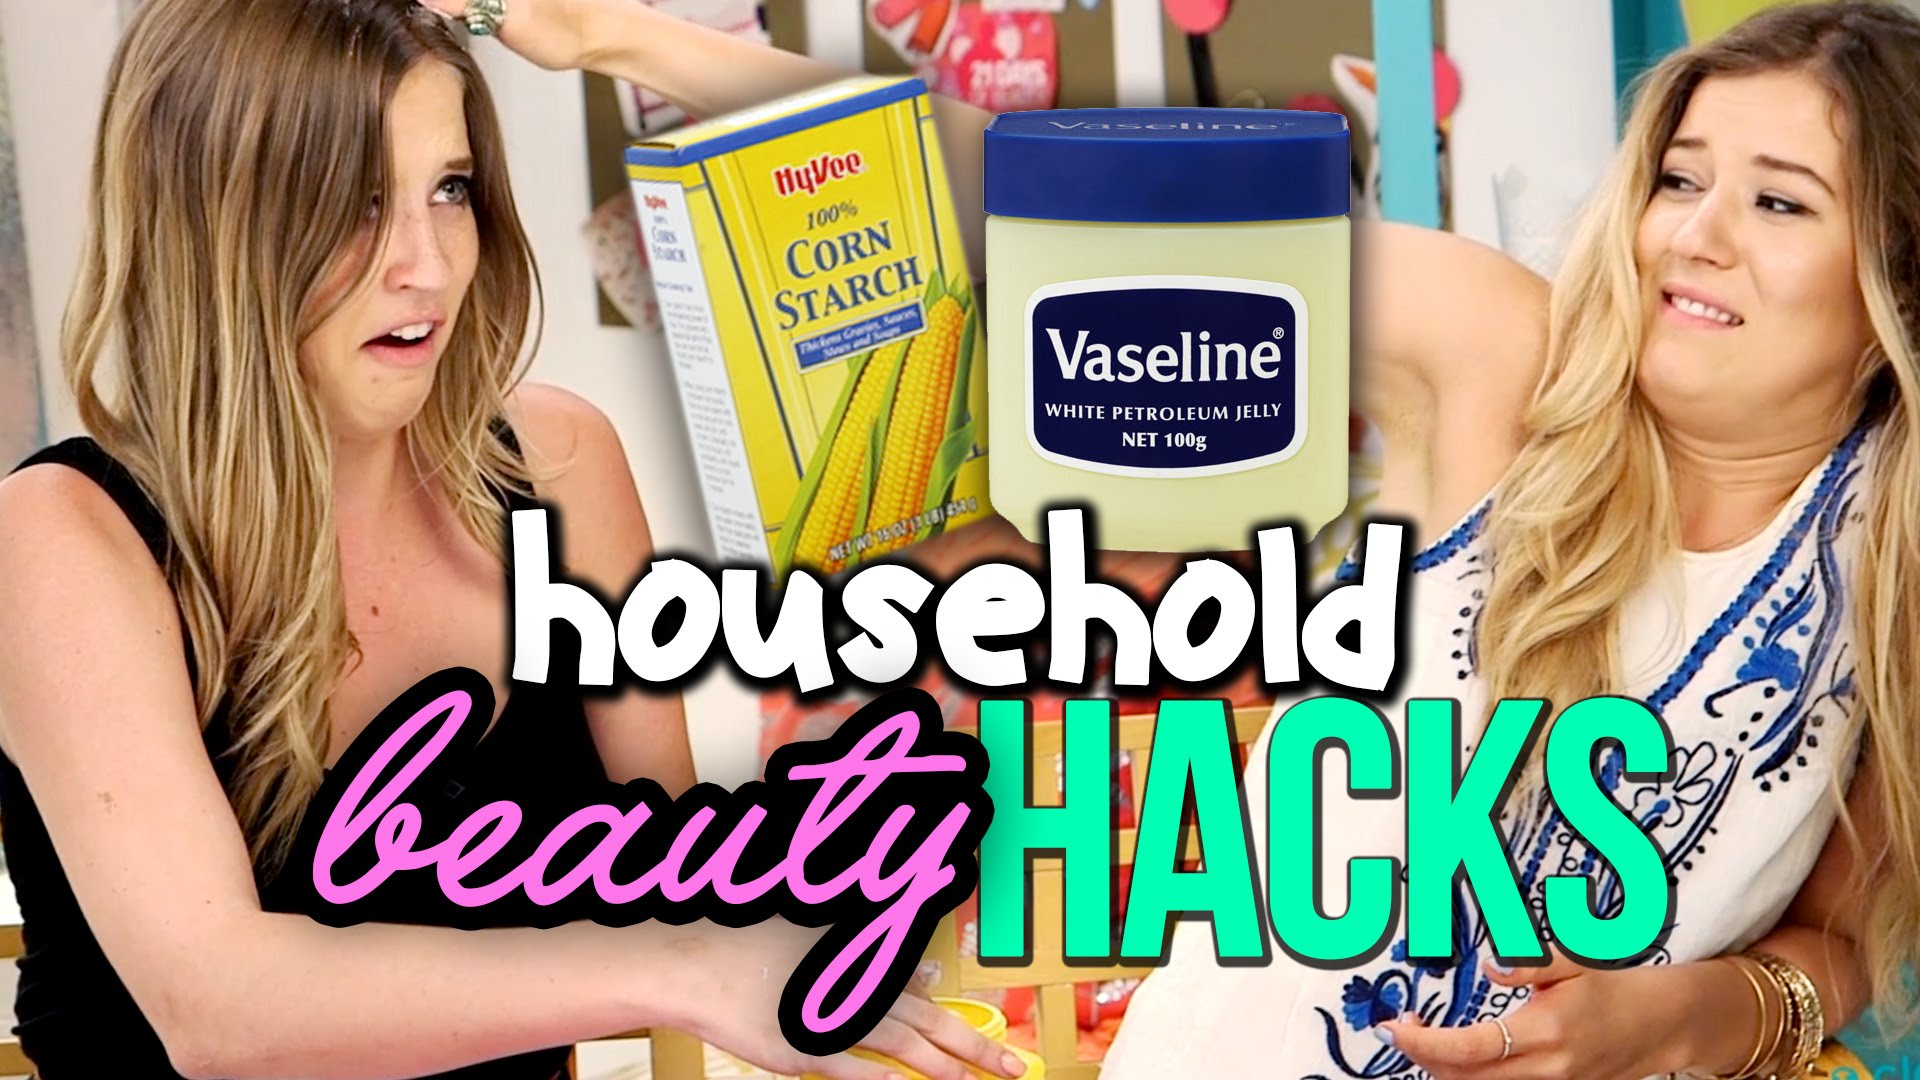 6 Tricks When You Run Out of Beauty Products – Household Beauty Hacks